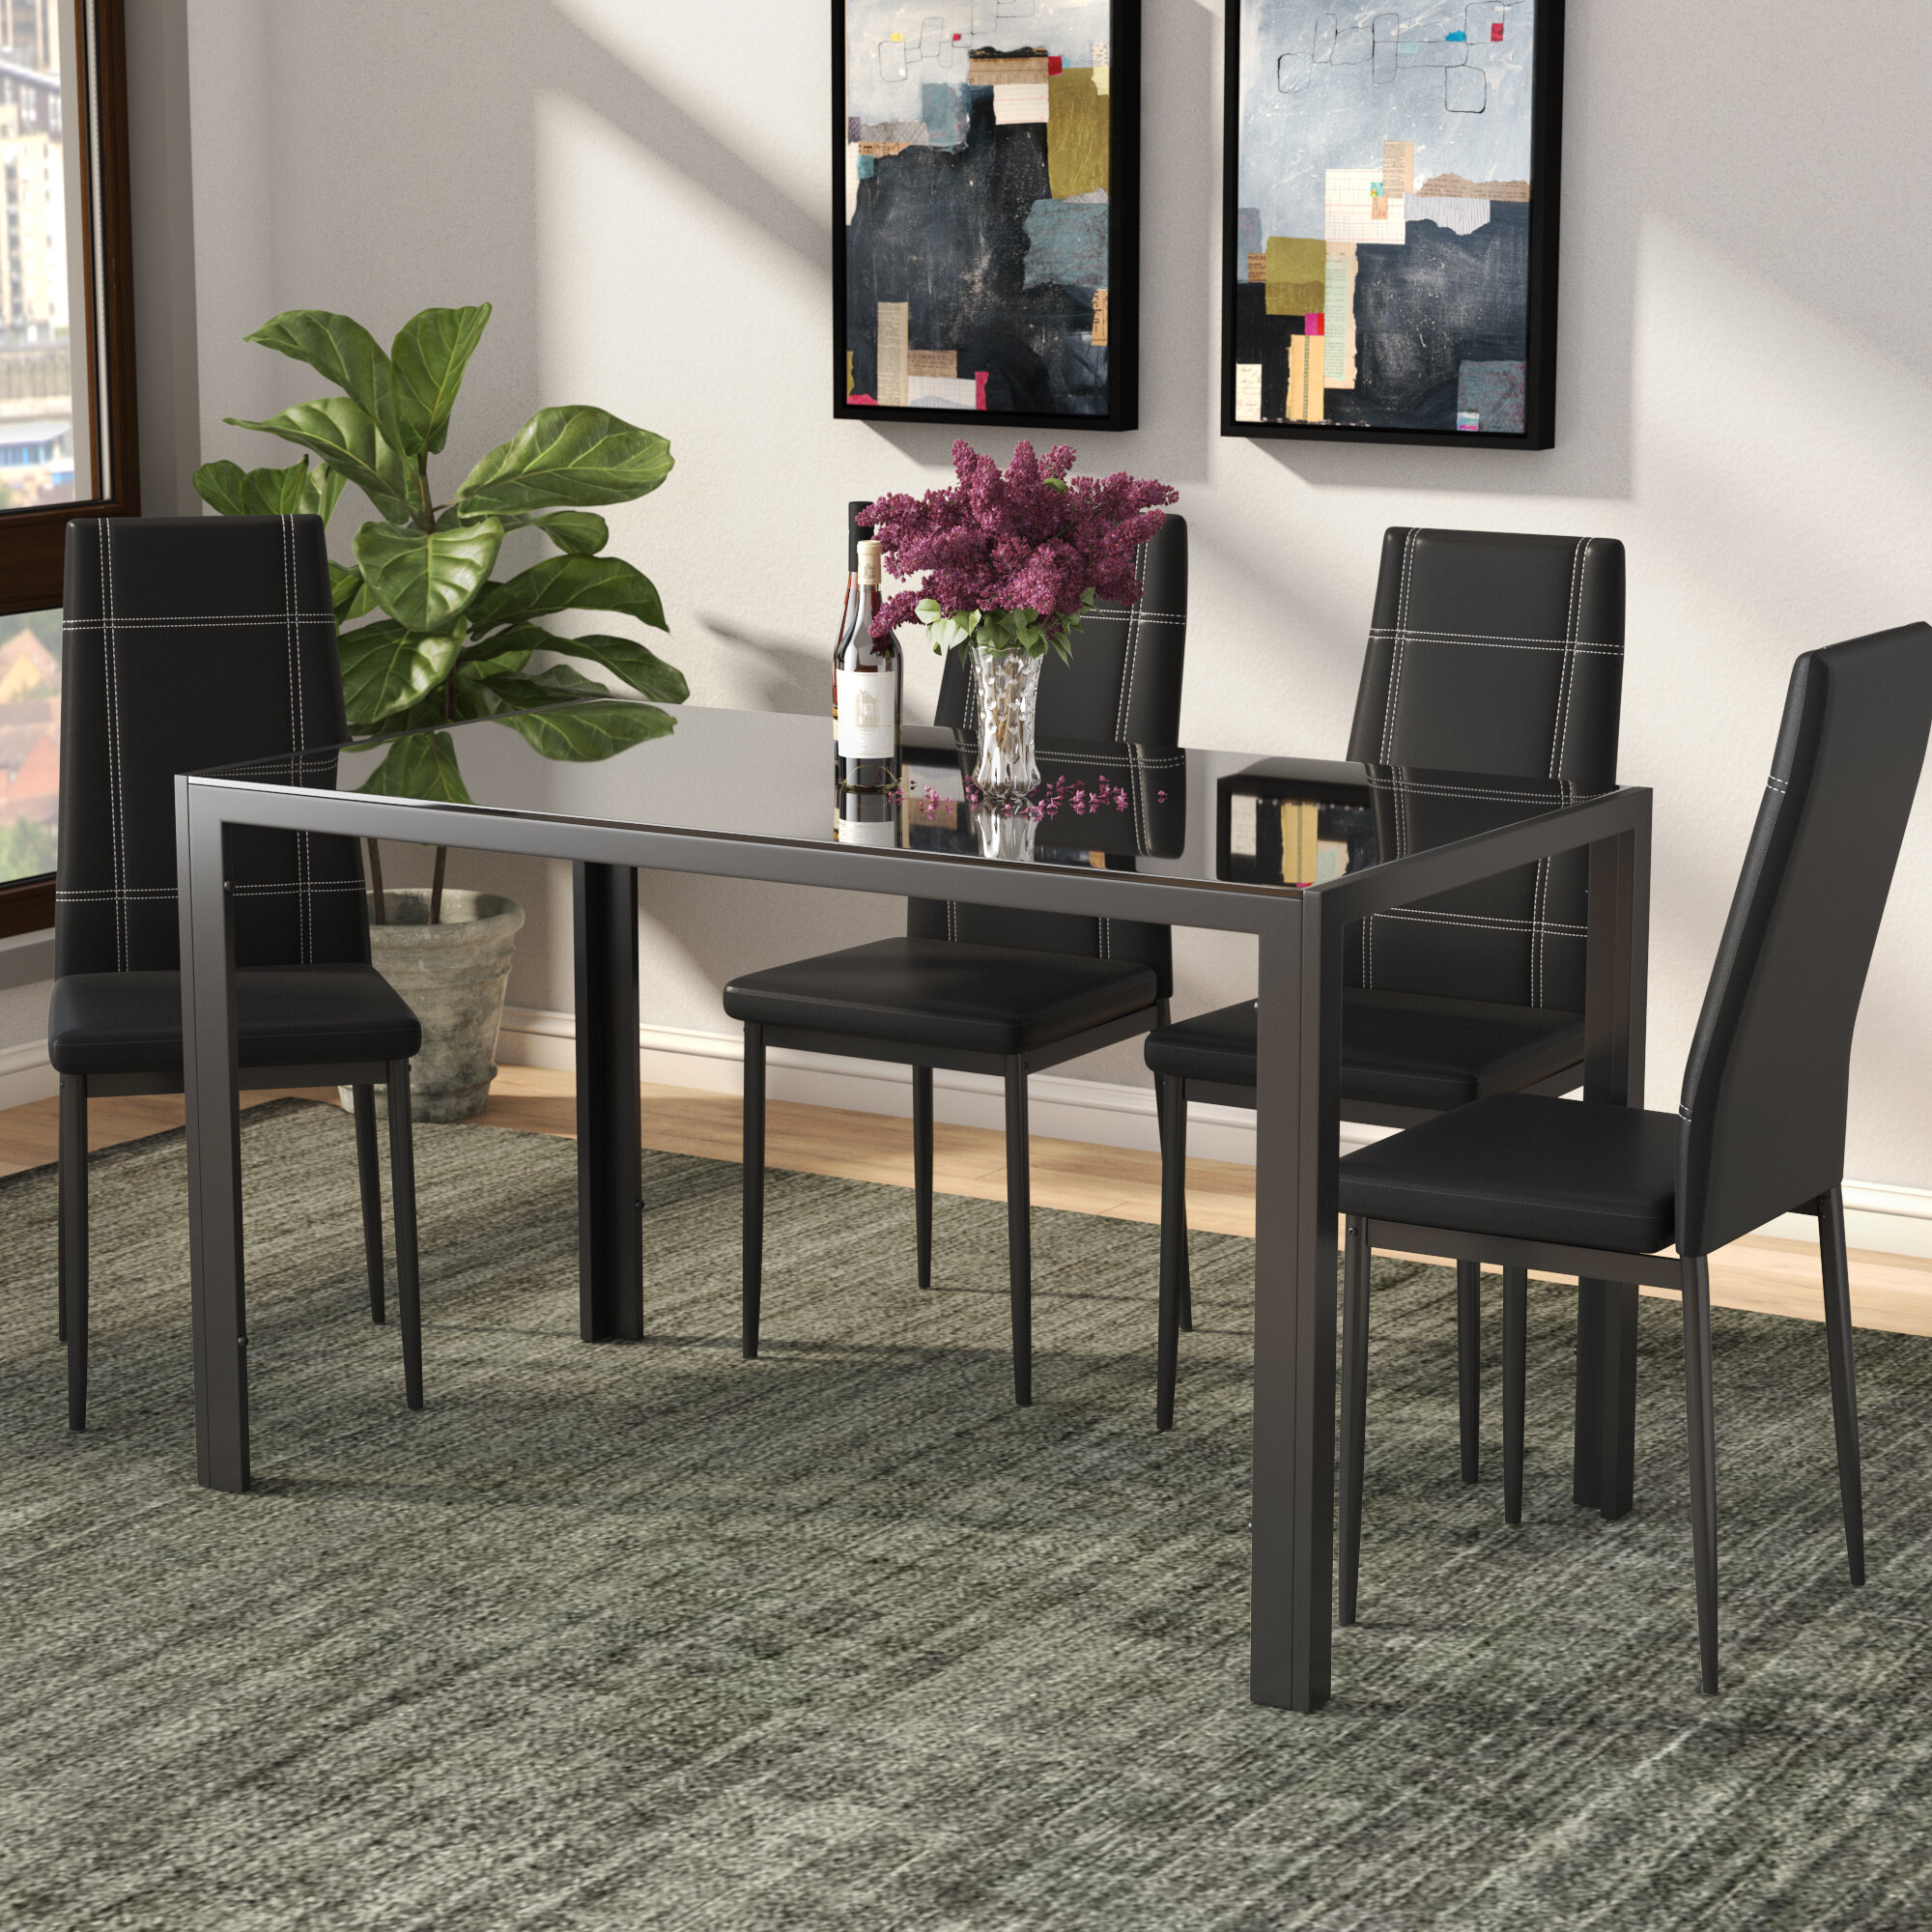 Ordinaire Maynard 5 Piece Dining Set